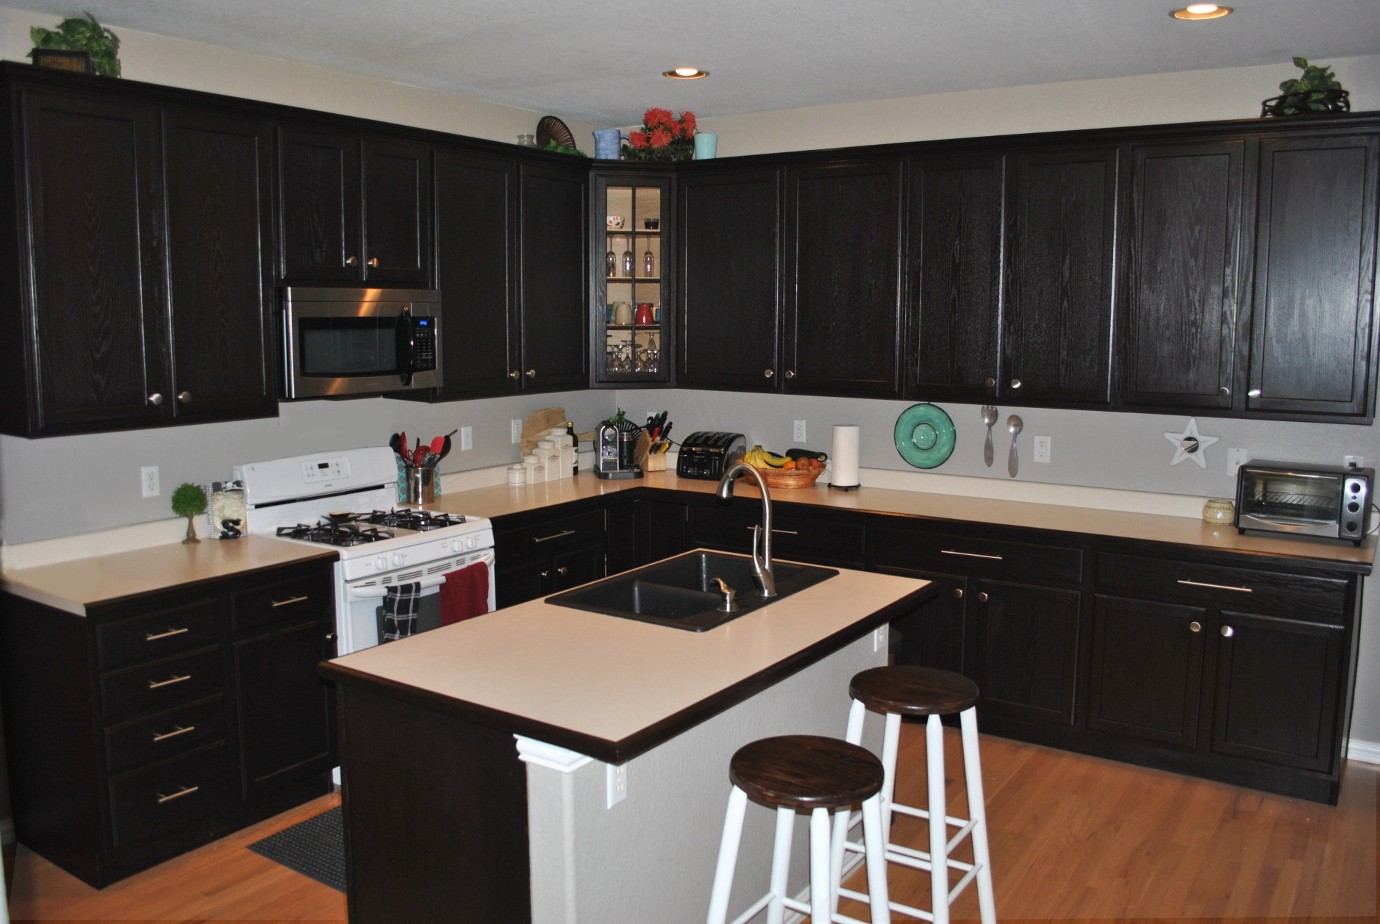 Is Staining Kitchen Cabinets a Good Idea?